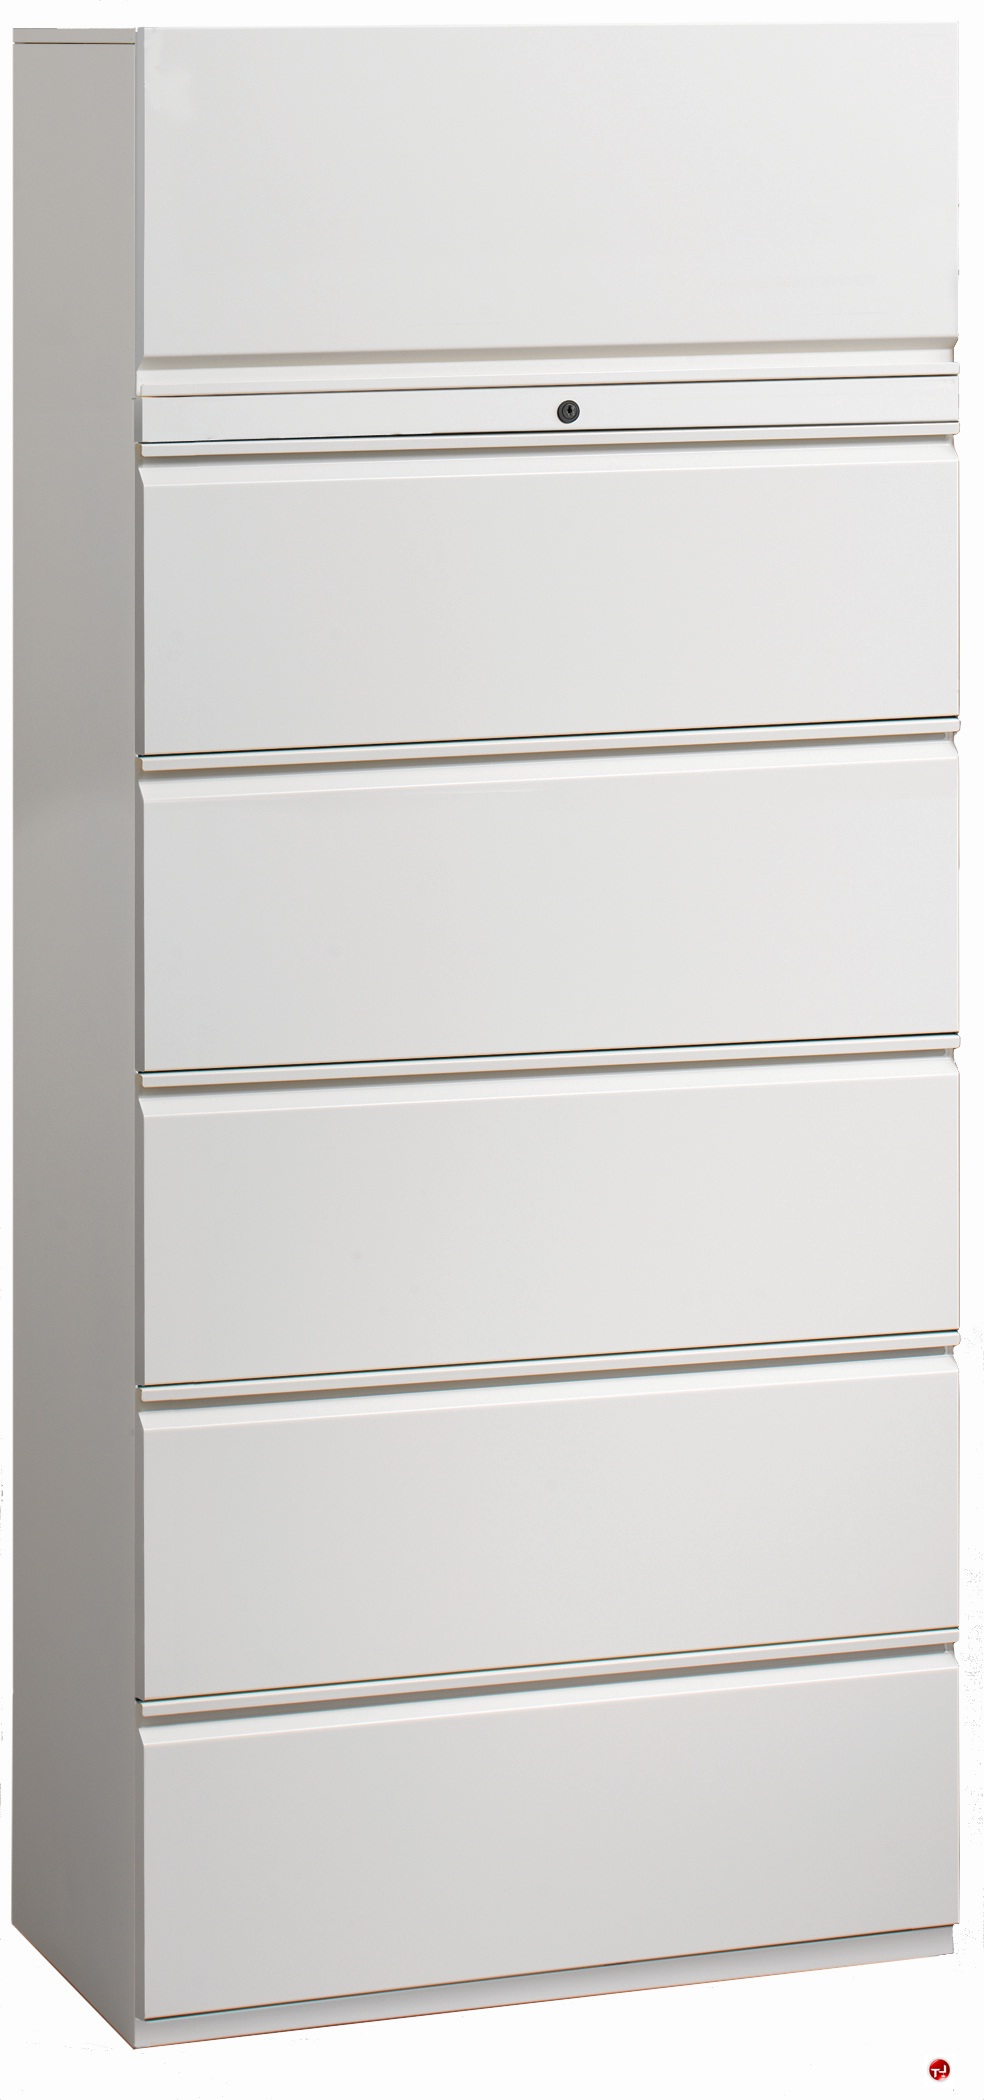 The Office Leader 6 Drawer Trace Lateral File Storage